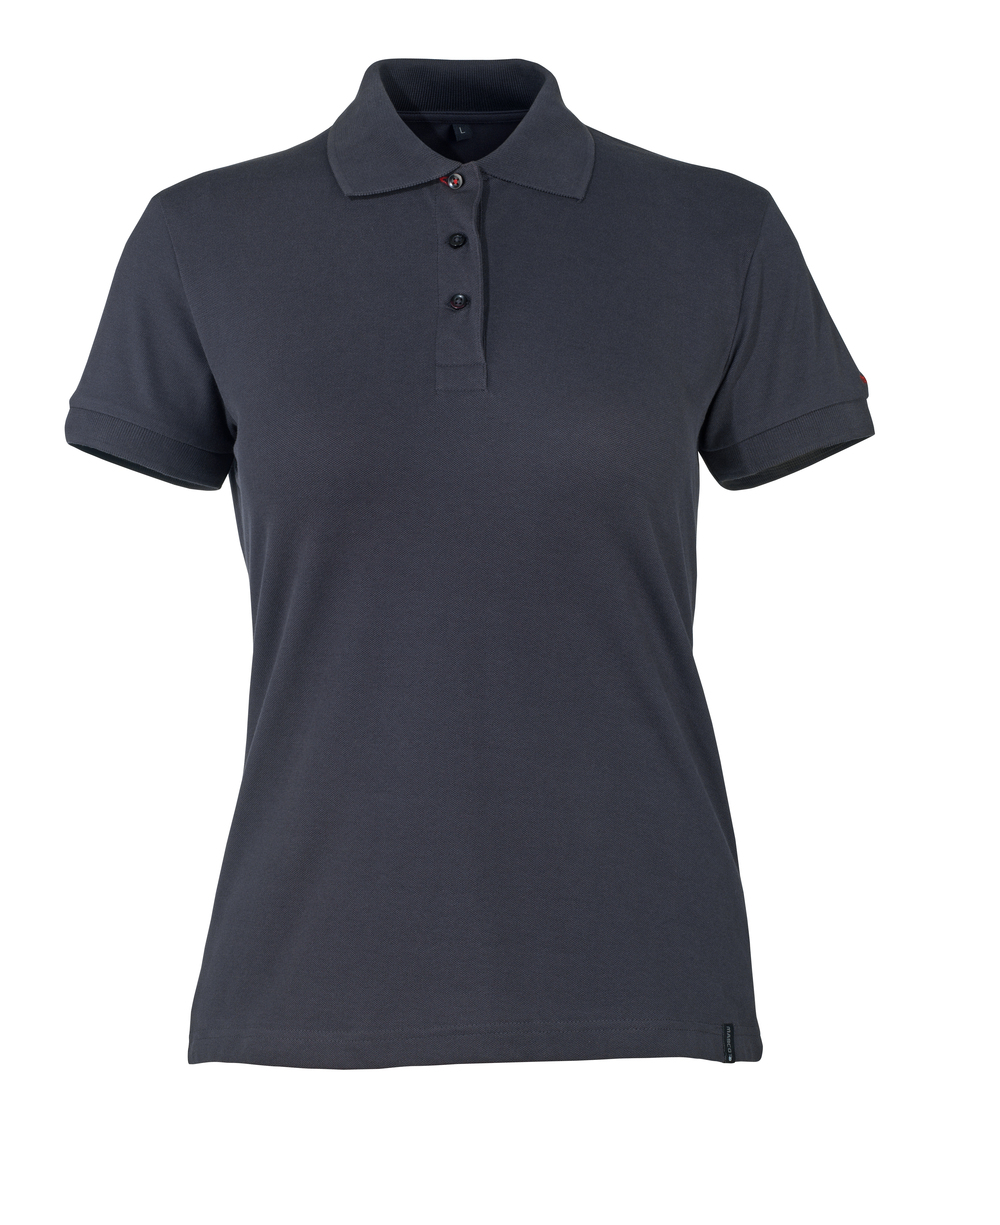 50363-861-010 Polo Shirt - dark navy